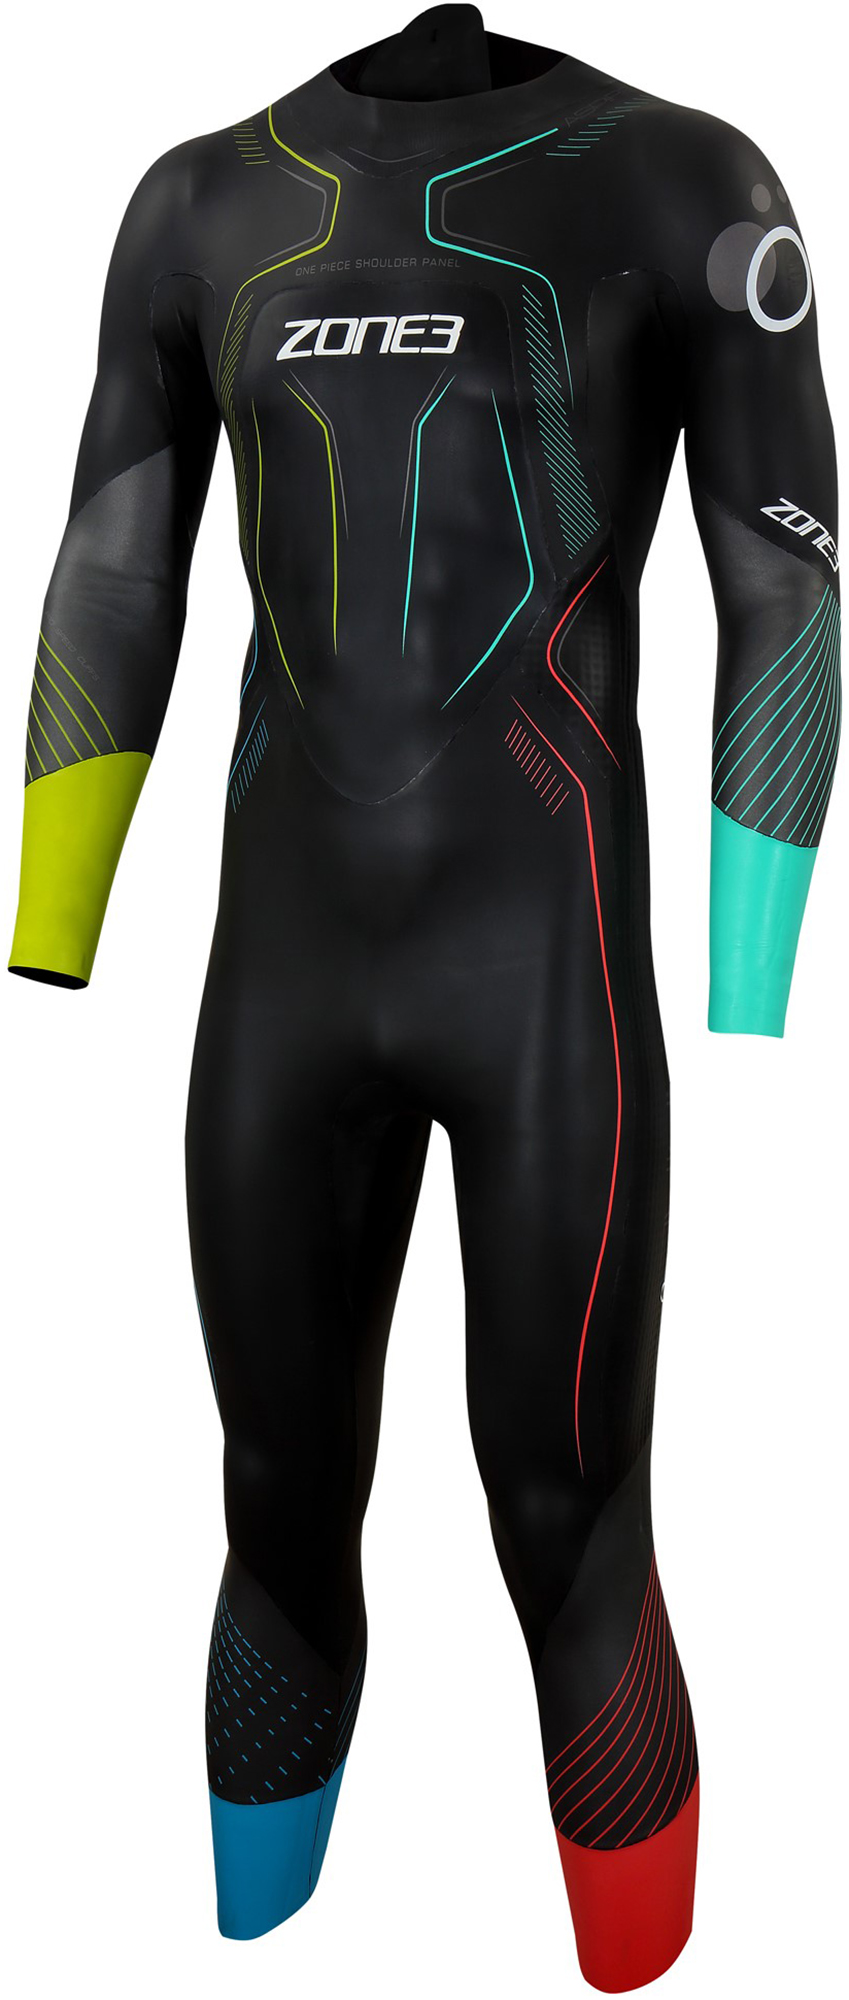 Zone3 Men's Aspire Limited Edition Wetsuit | swim_clothes